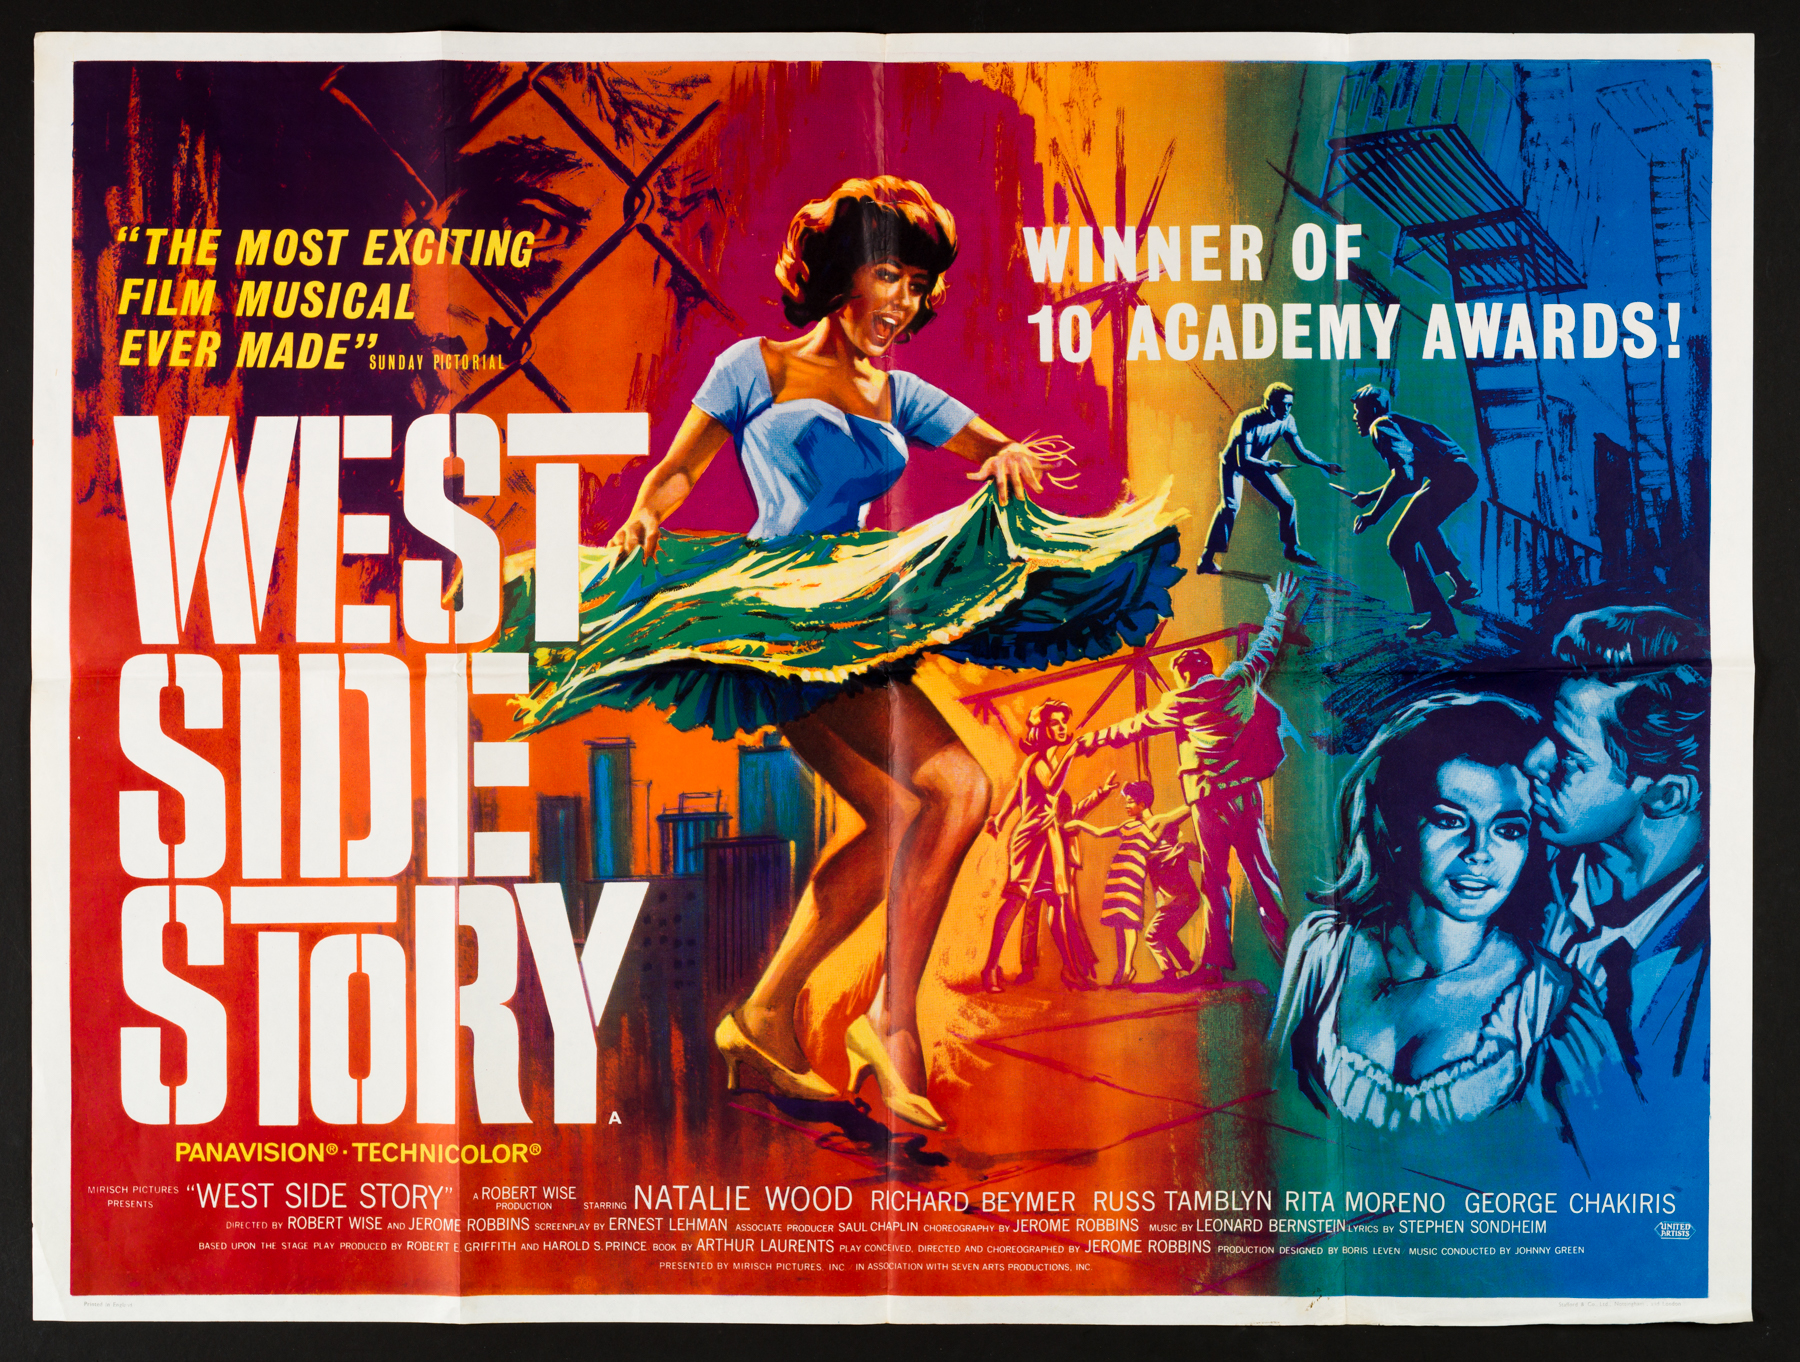 West Side Story  movie poster, 1961.